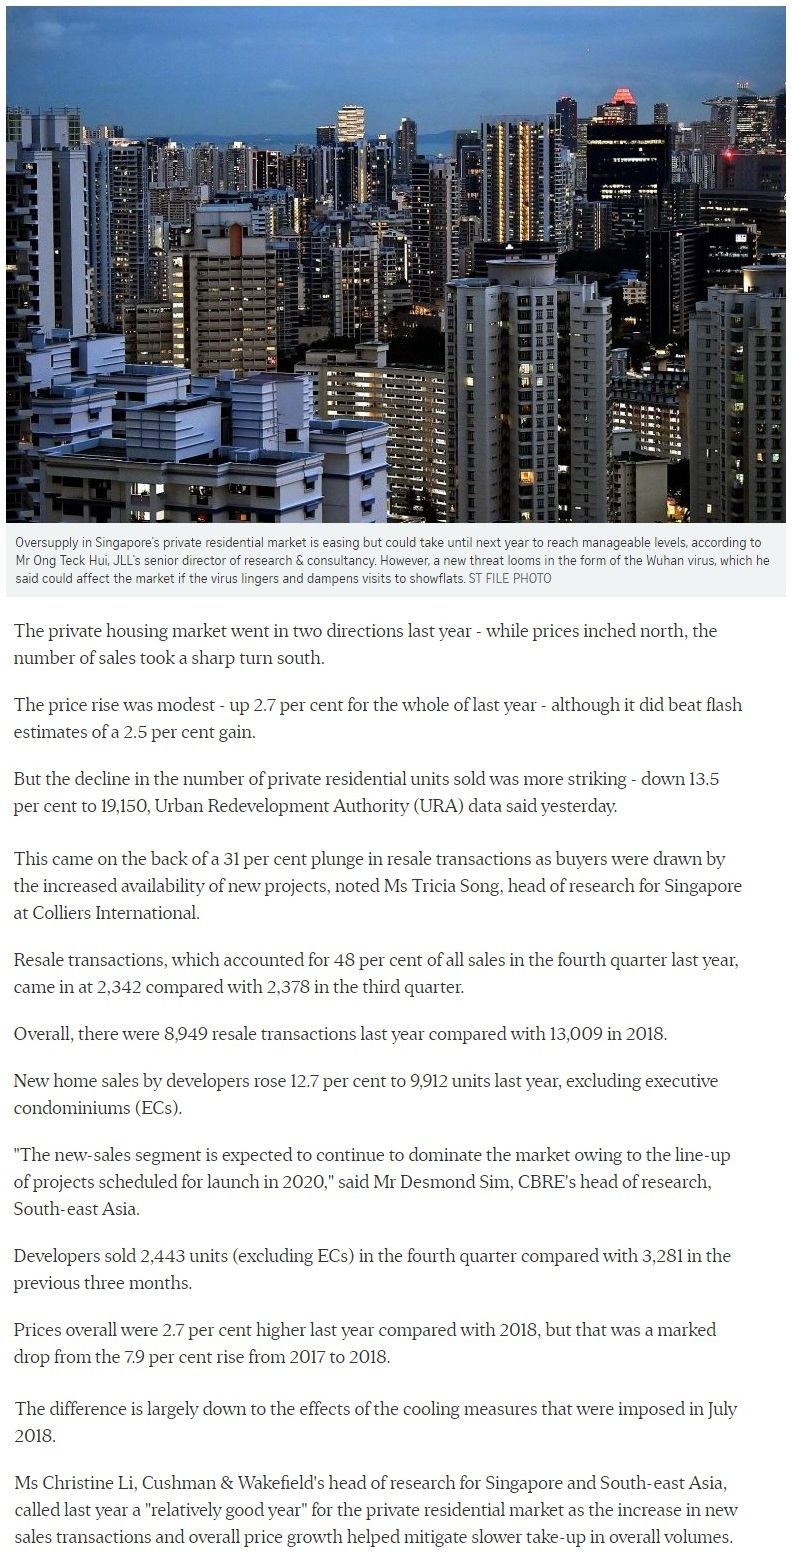 La Mariposa - Singapore private home prices inch up 2.7% for 2019 Part 1